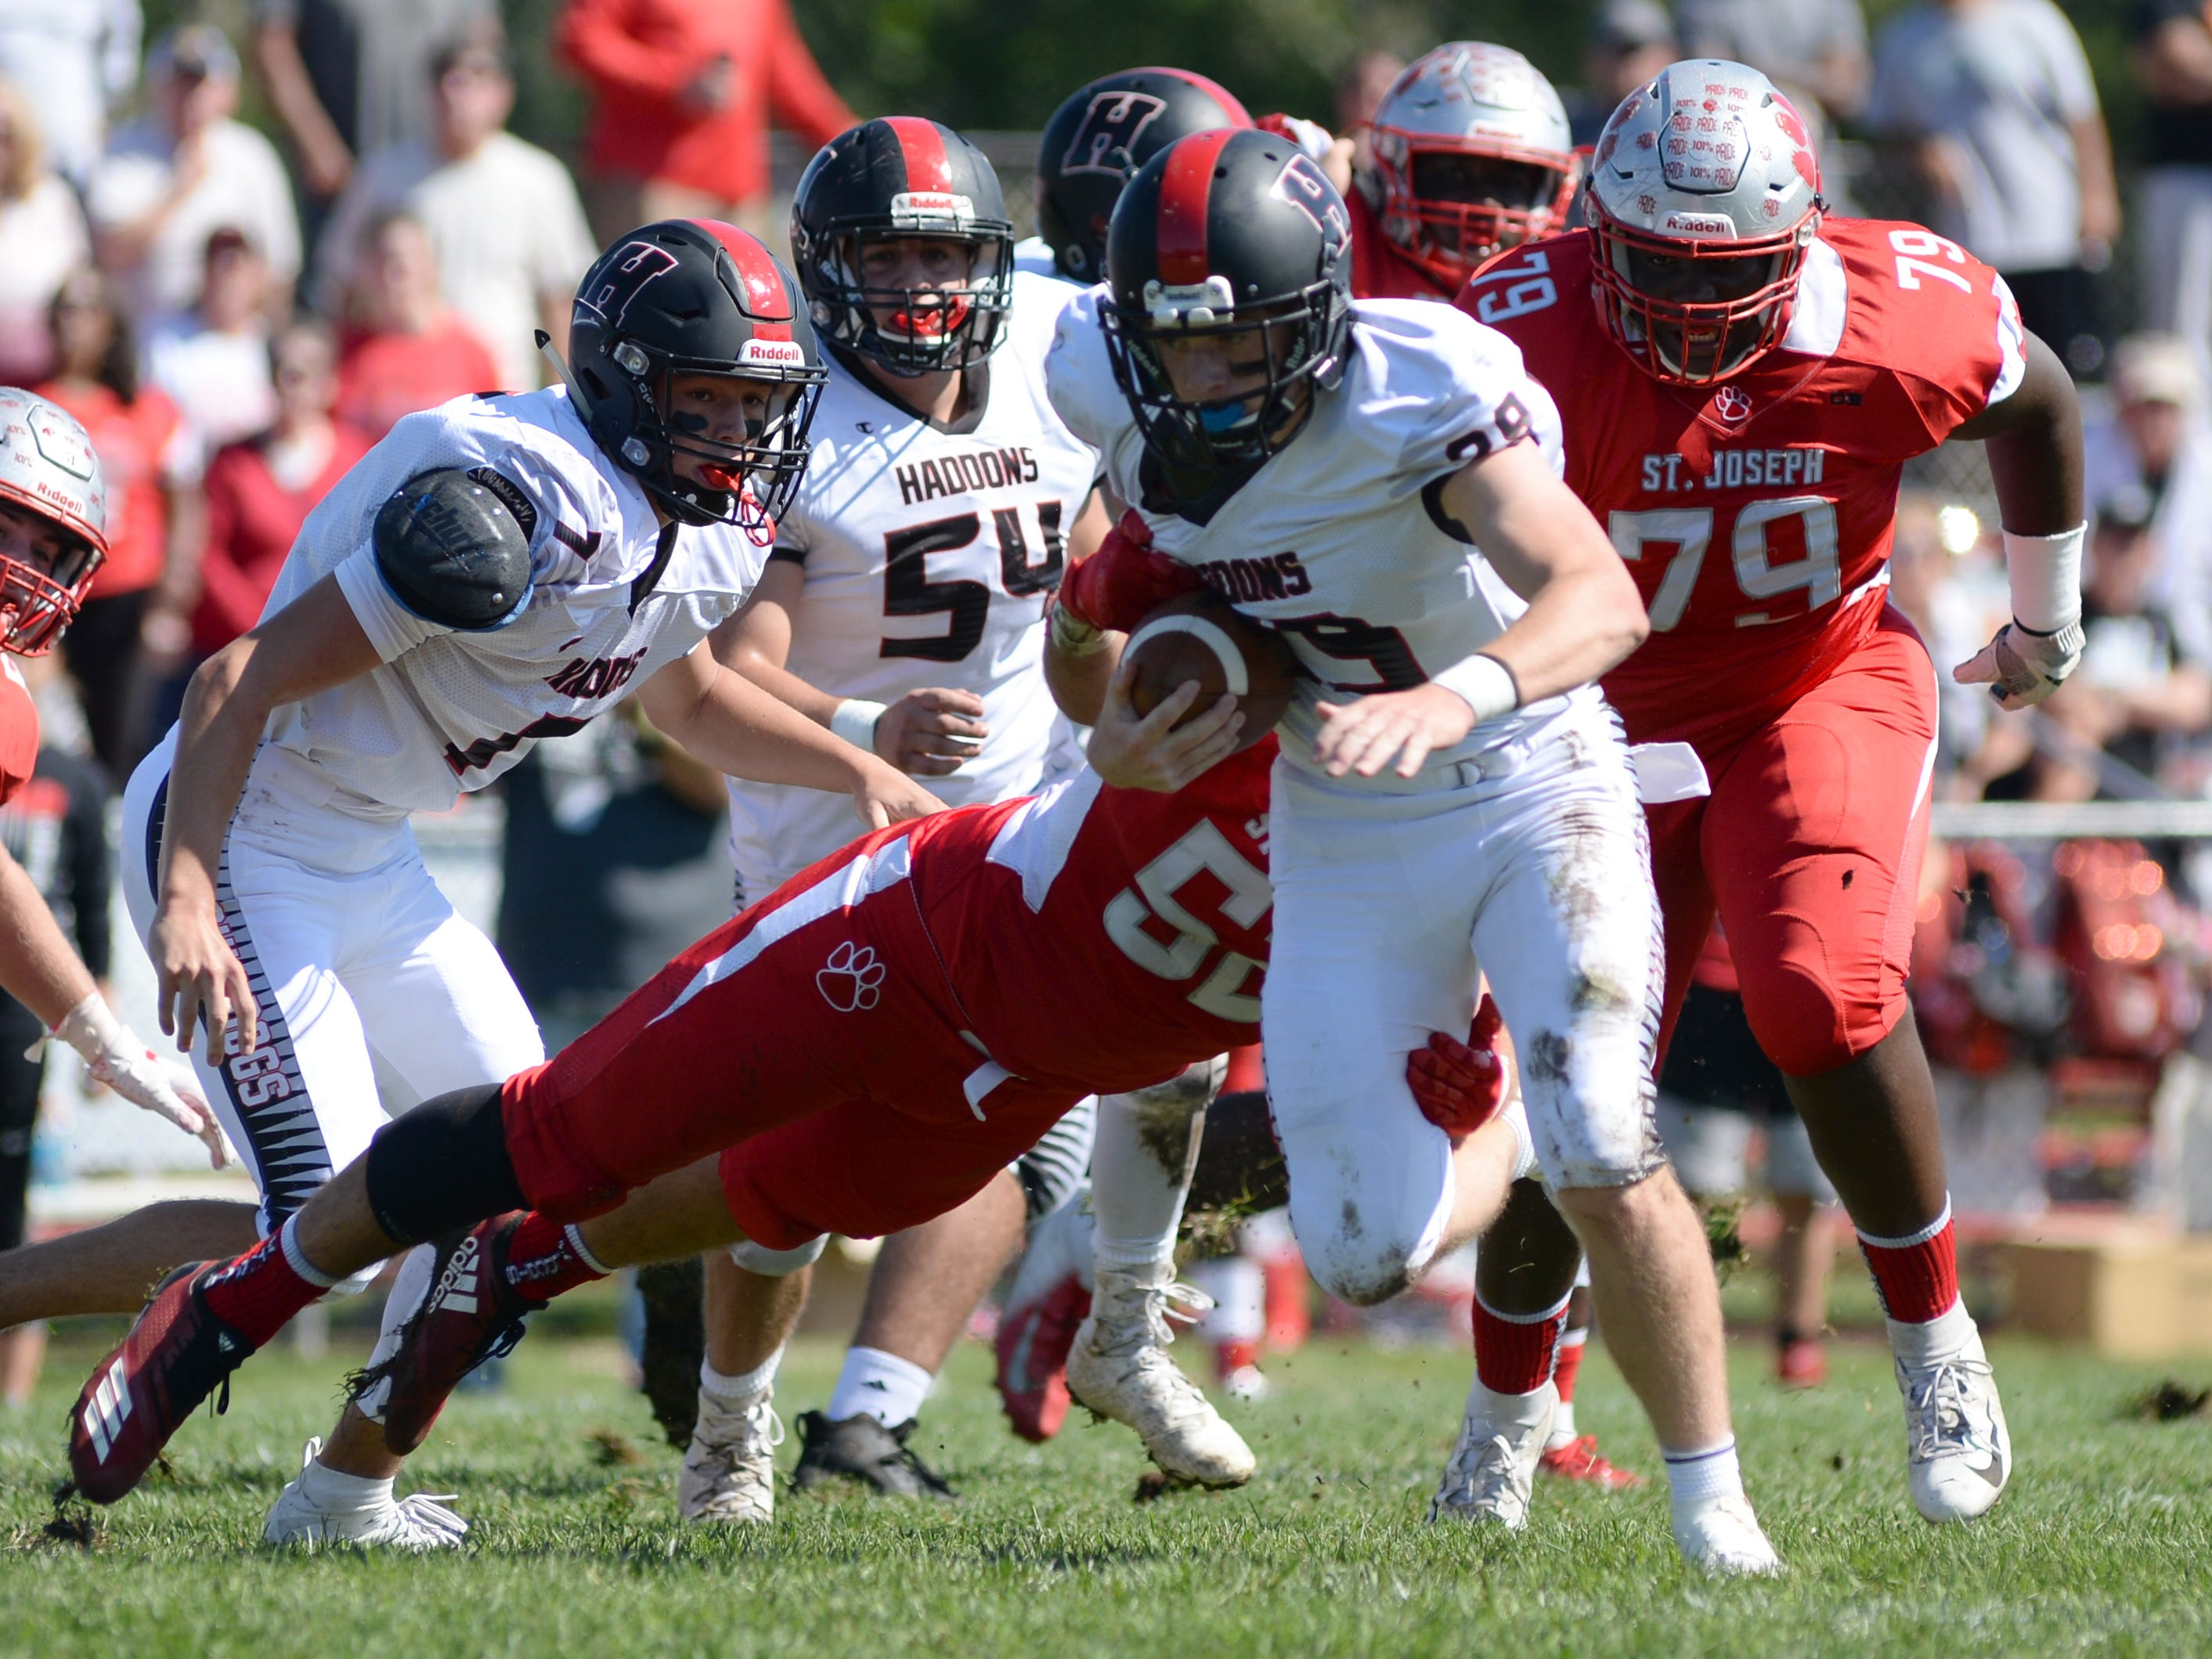 Haddonfield's Tommy Batson runs the ball during Saturday's game against St. Joseph, Sept. 29, 2018.